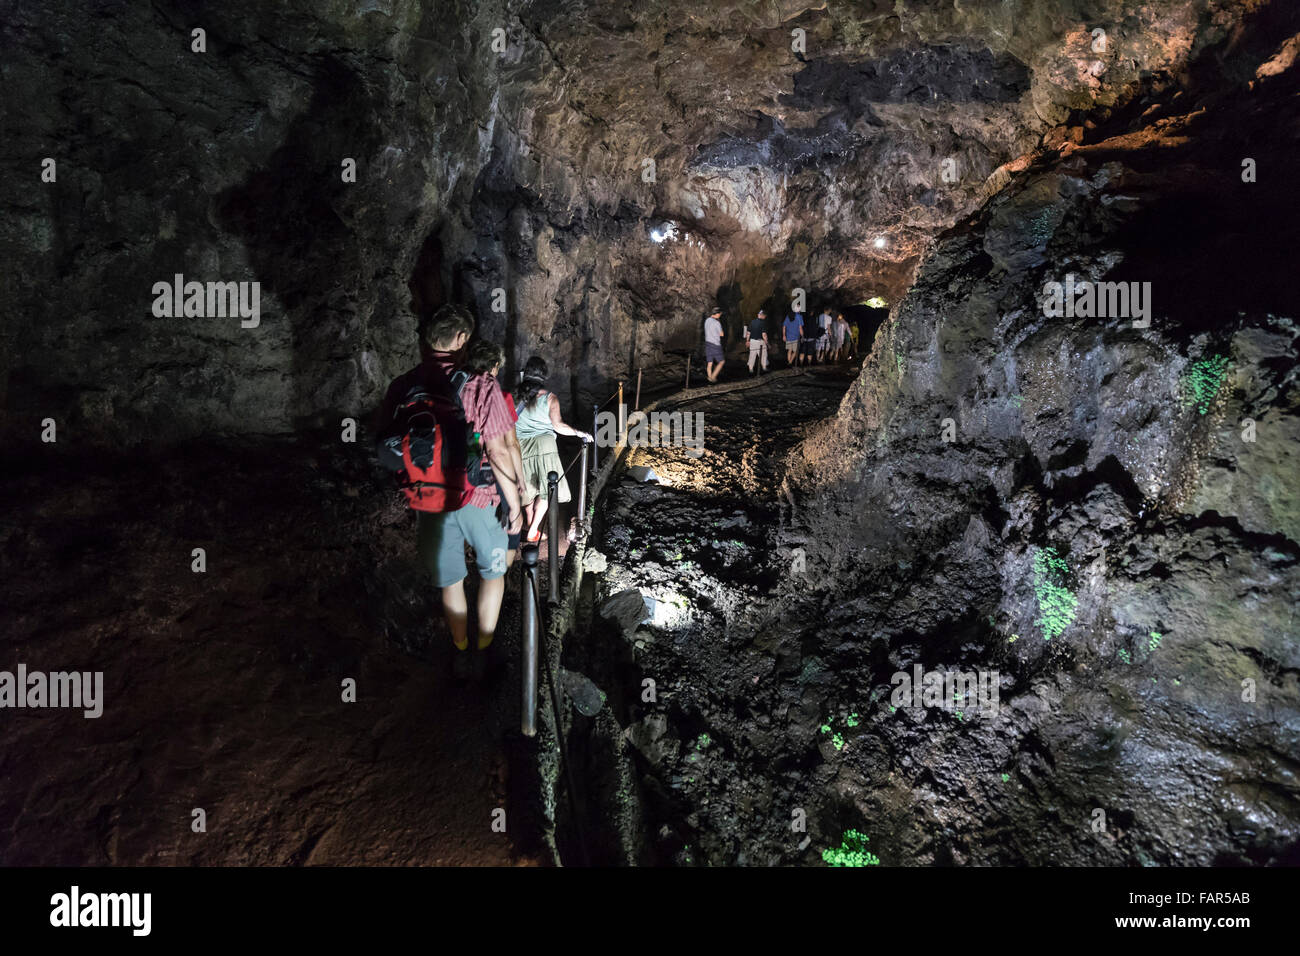 Madeira Grutas De Sao Vicente Group Of Visitors In The